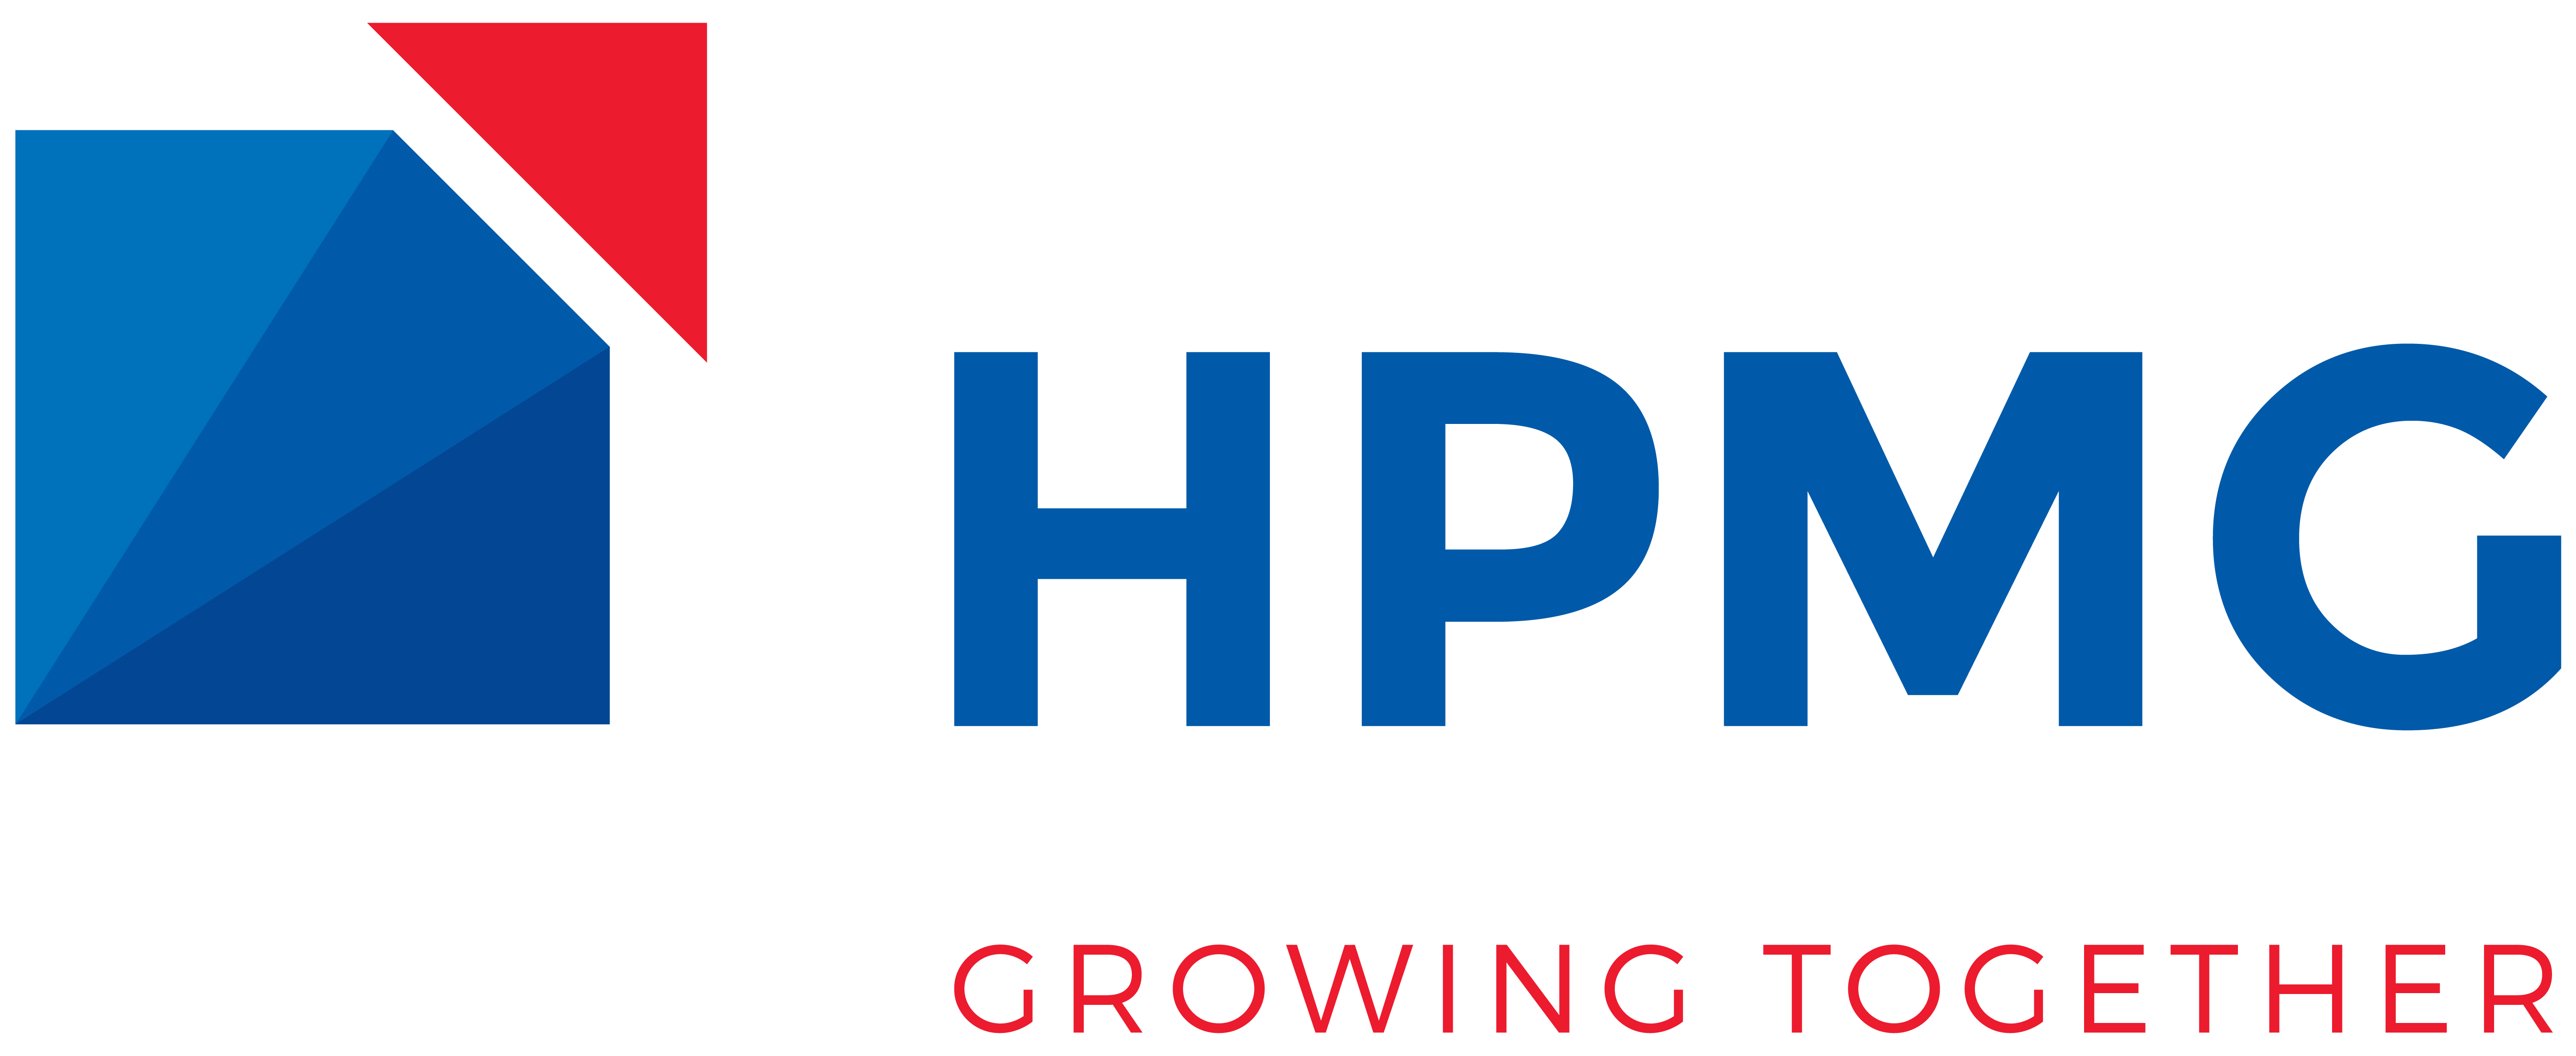 HPMG Shares And Securities Logo